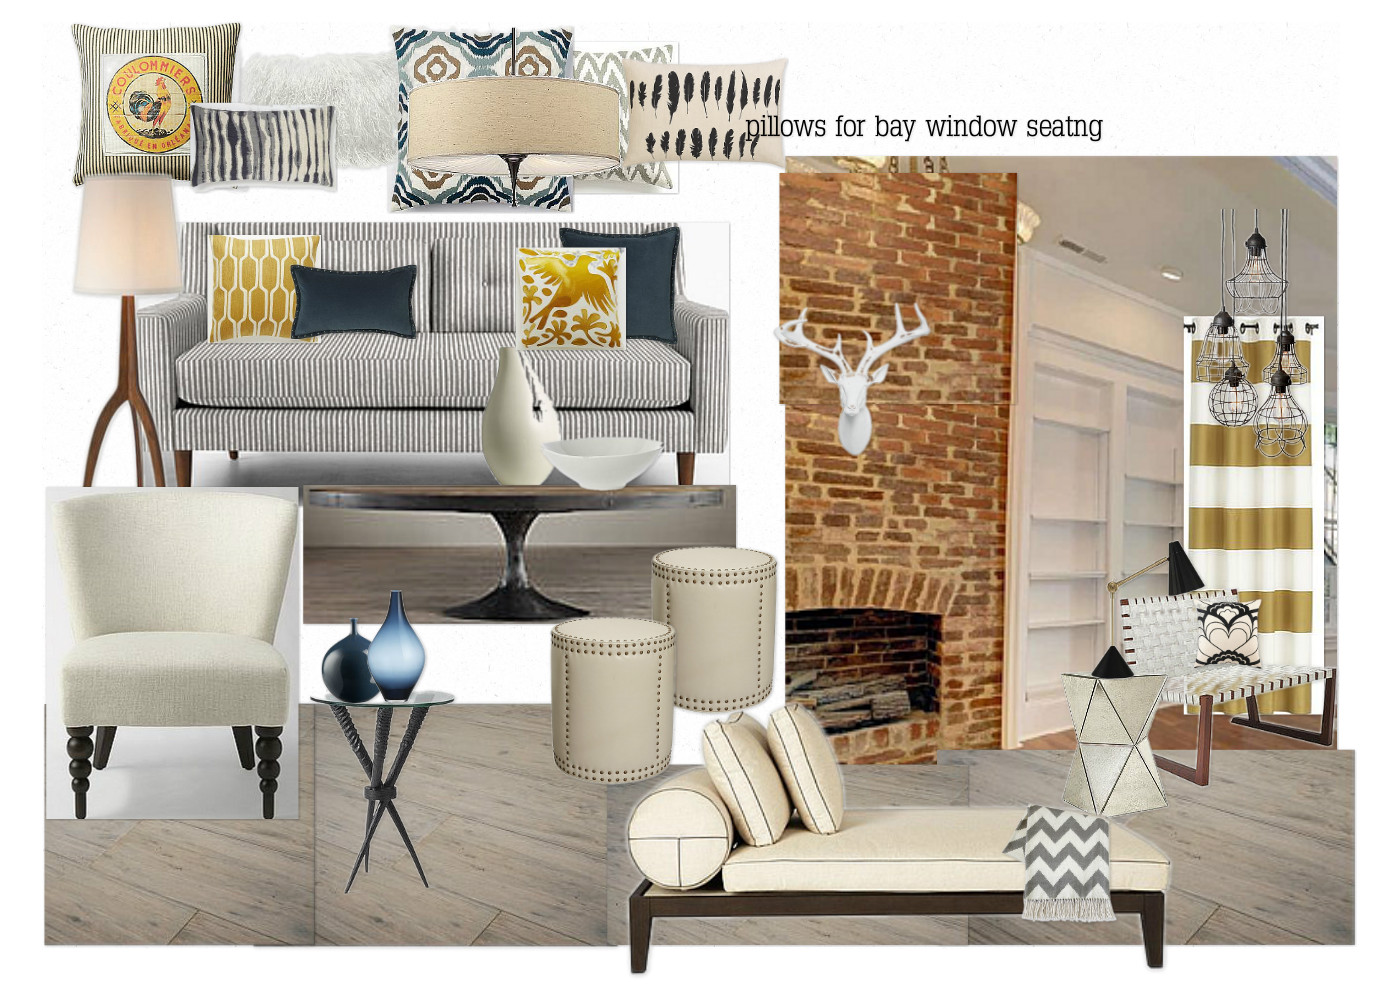 Olioboard west elm competition island girl glam for West elm living room ideas